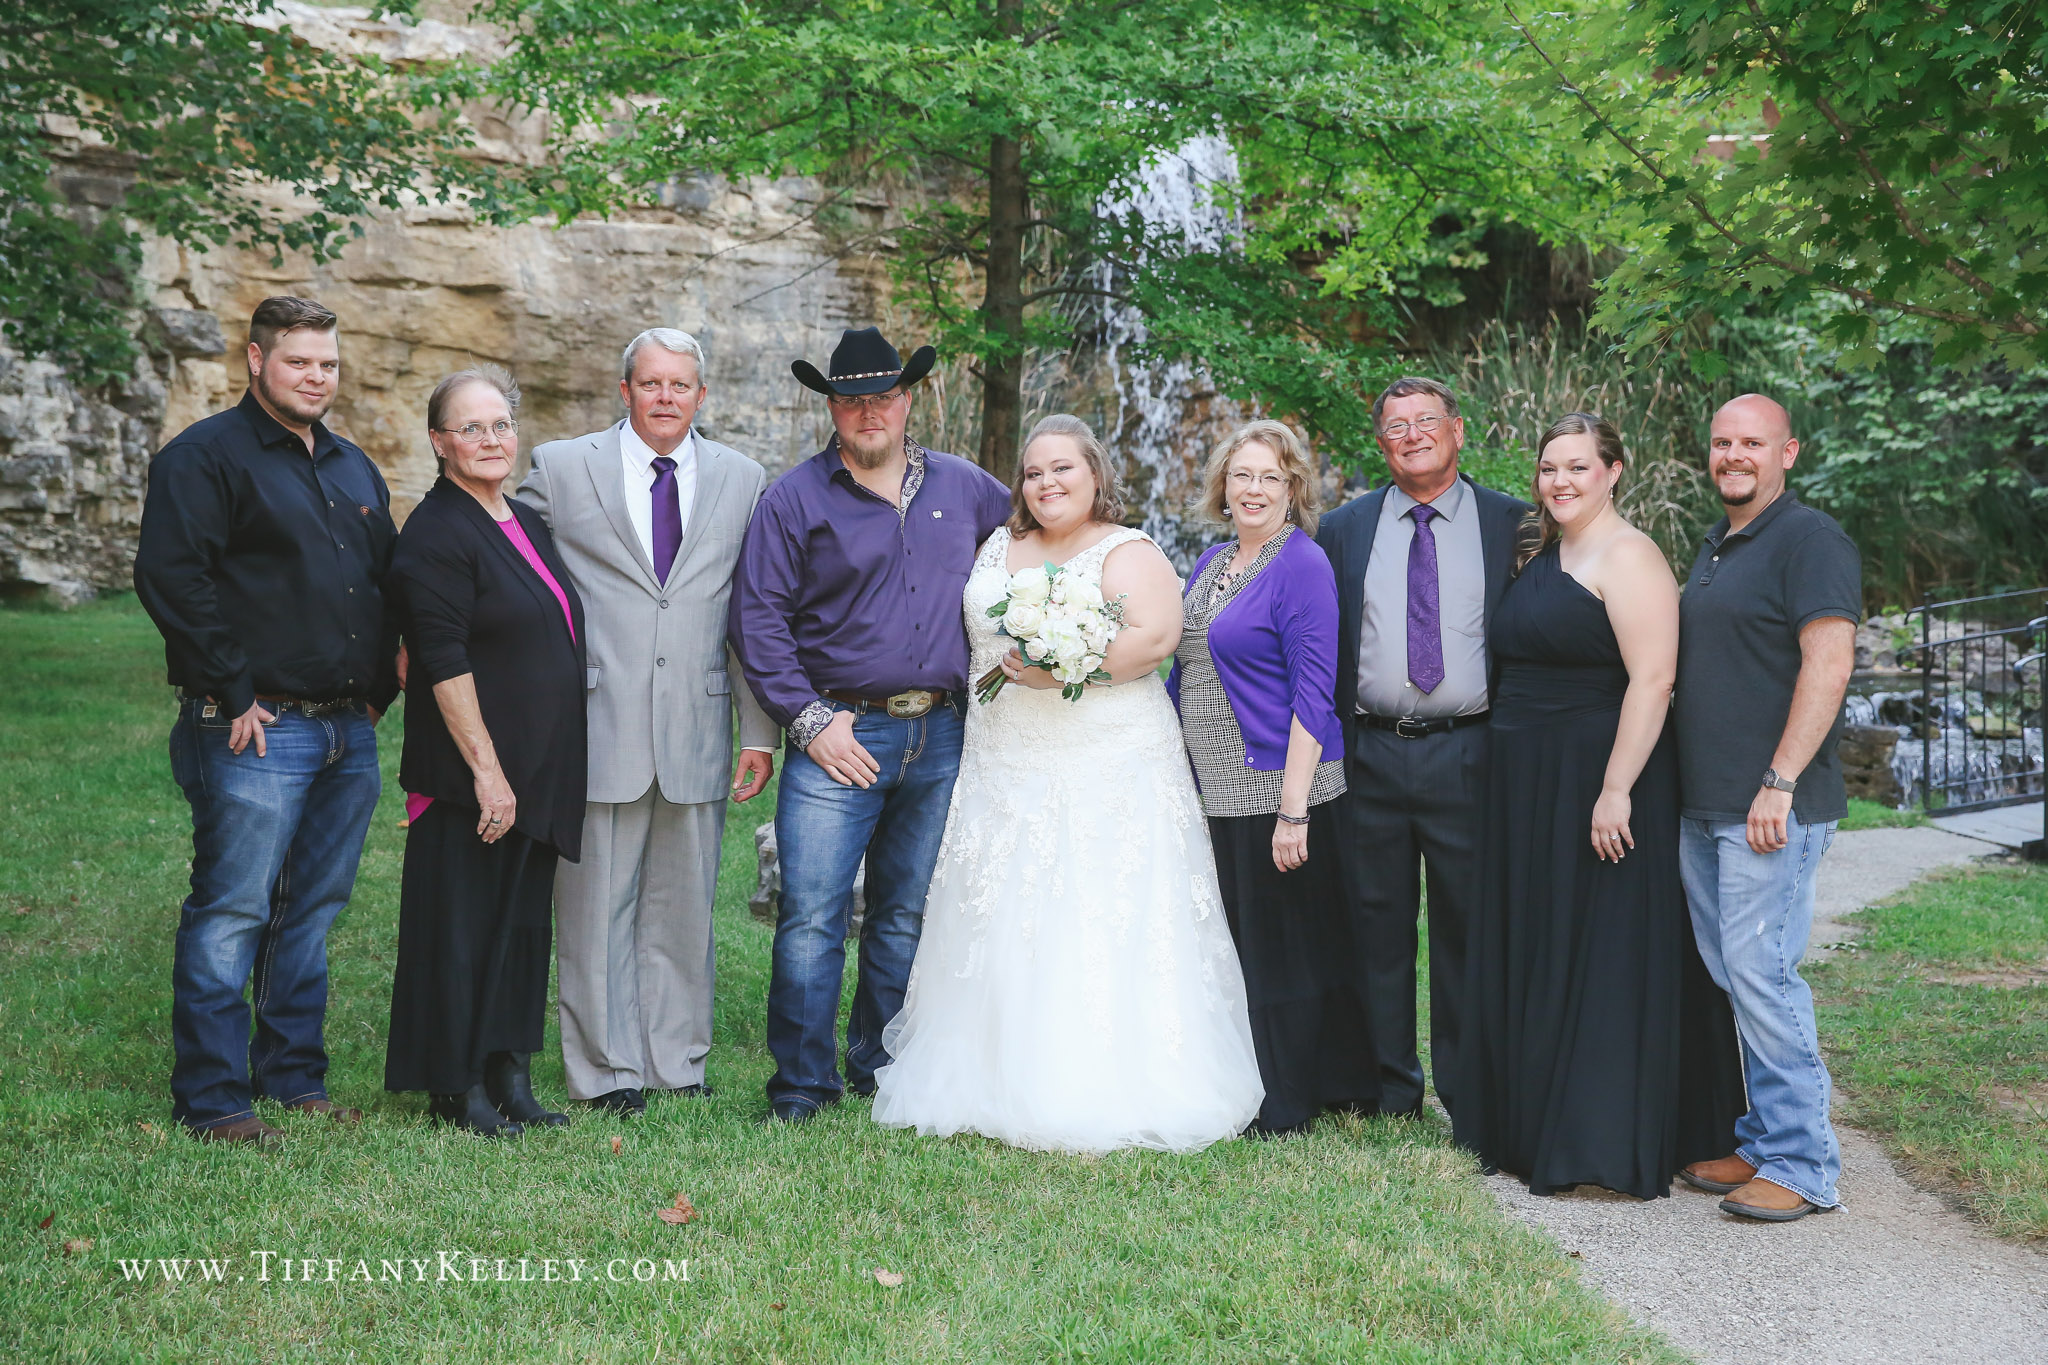 branson-missouri-big-cedar-lodge-wedding-photographer-tiffany-kelley-photography-11